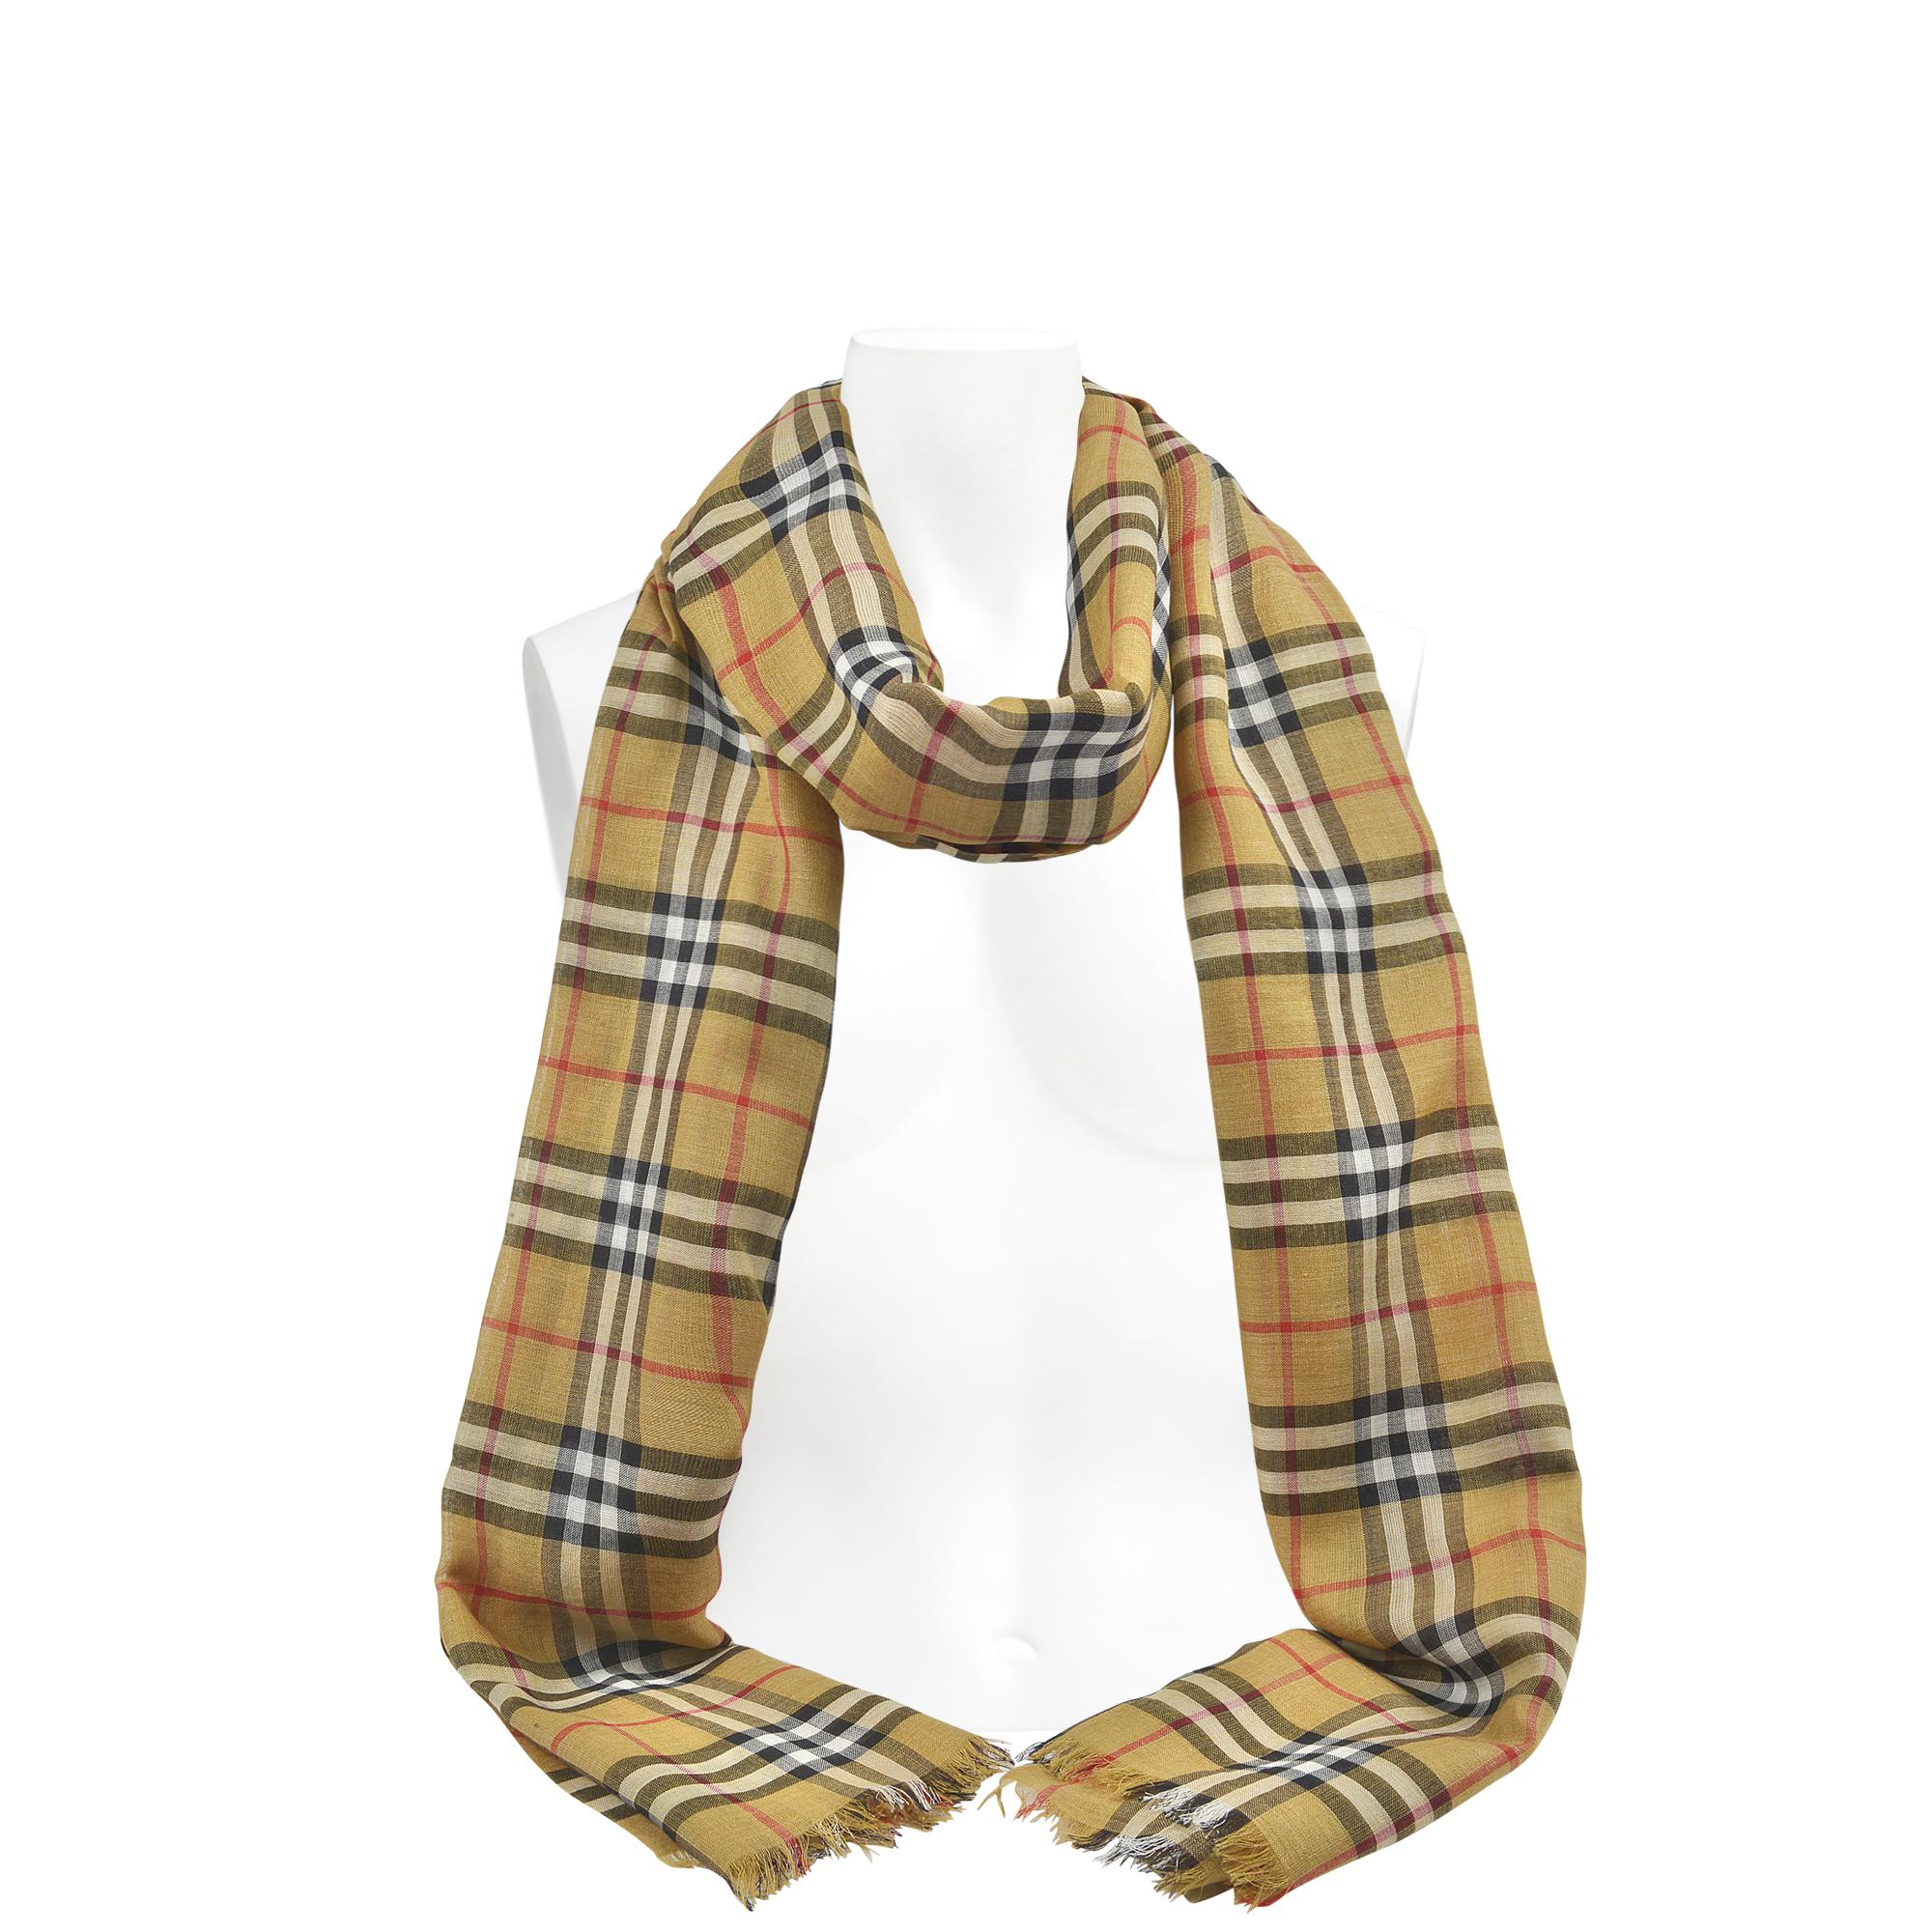 220X70 Vintage Check Gauze Scarf in Bright Yellow Wool Burberry Sneakernews For Sale Cheap Price Free Shipping Geniue Stockist Cheap Price Fashion Style Cheap Price Hot Sale Cheap Online OrrtJ6v3